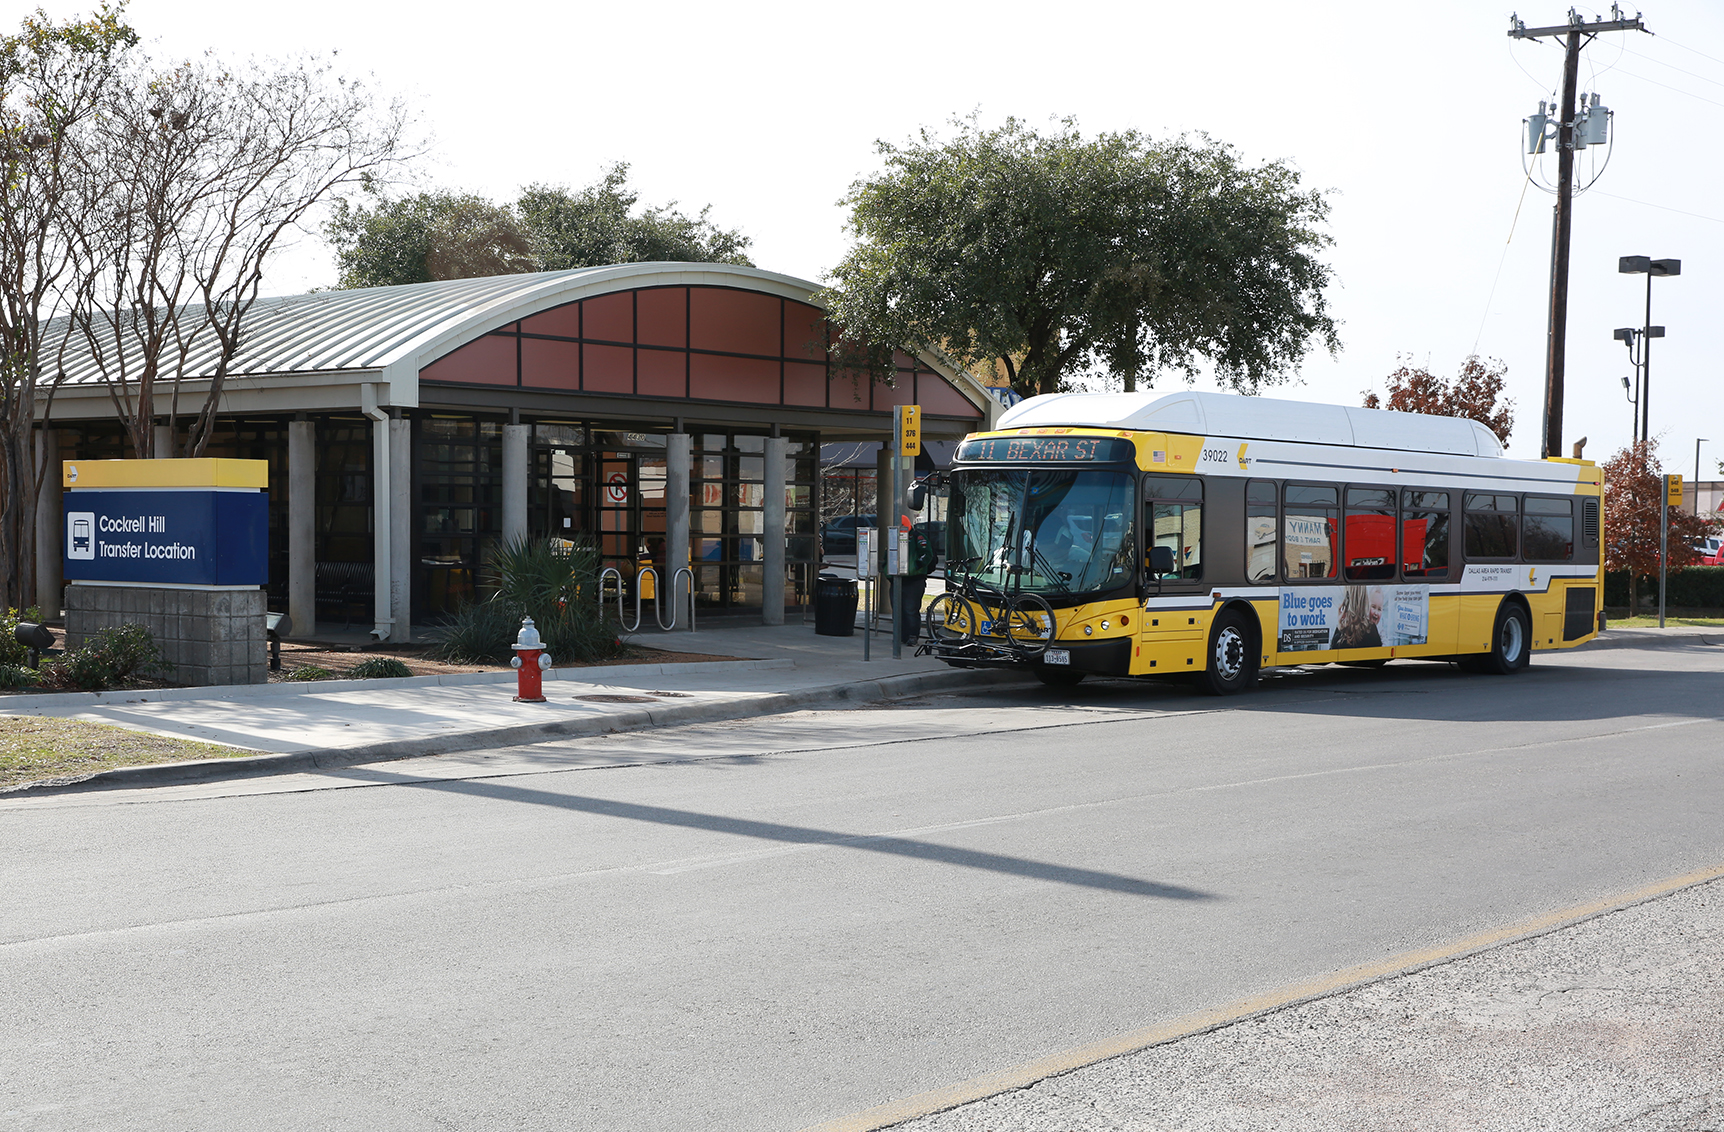 A DART bus waits for passengers at Cockrell Hill Transfer Location in Dallas.